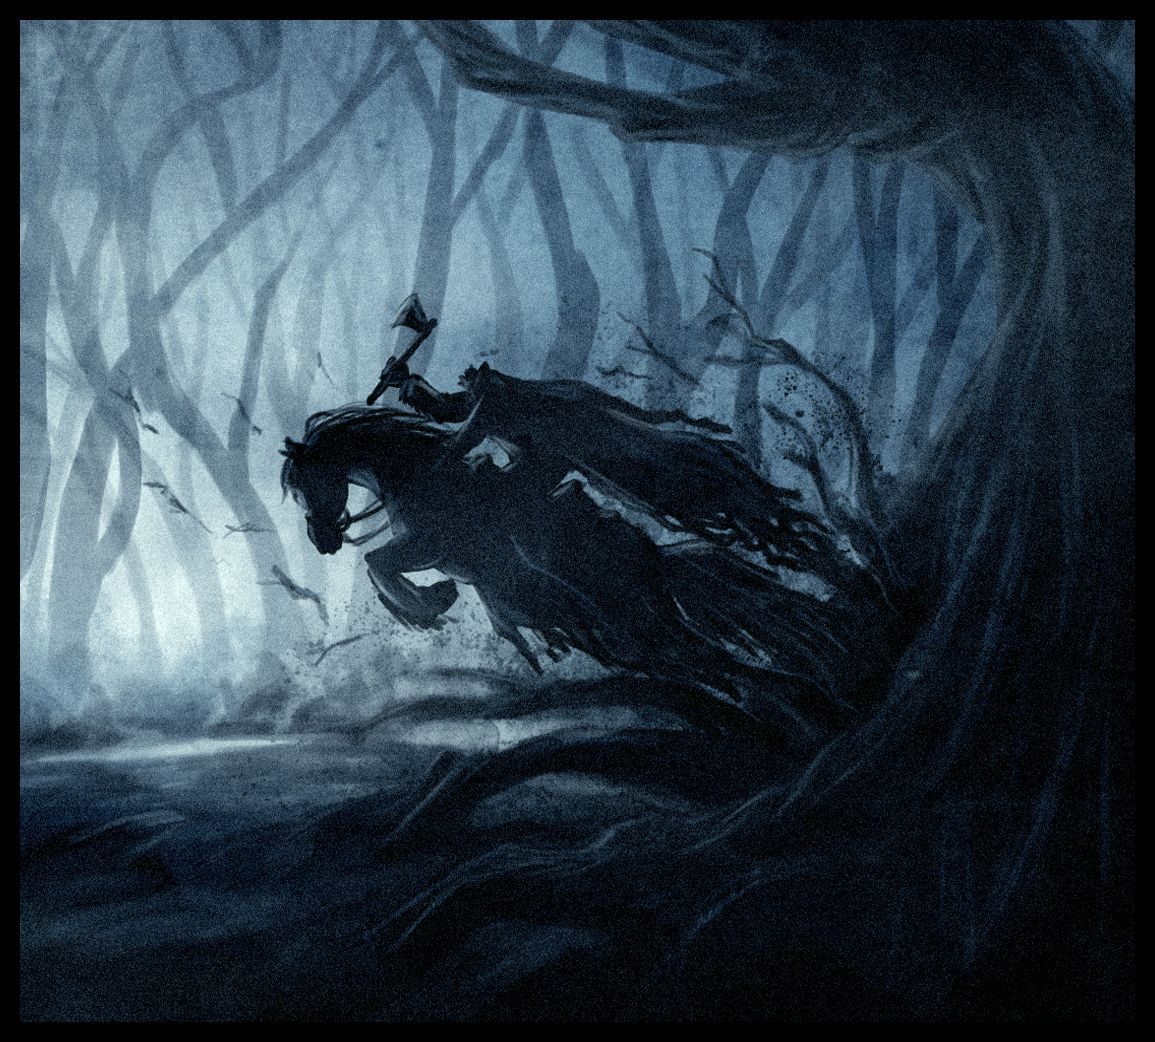 Headless Horse Man Headless Horseman Sleepy Hollow Sleepy